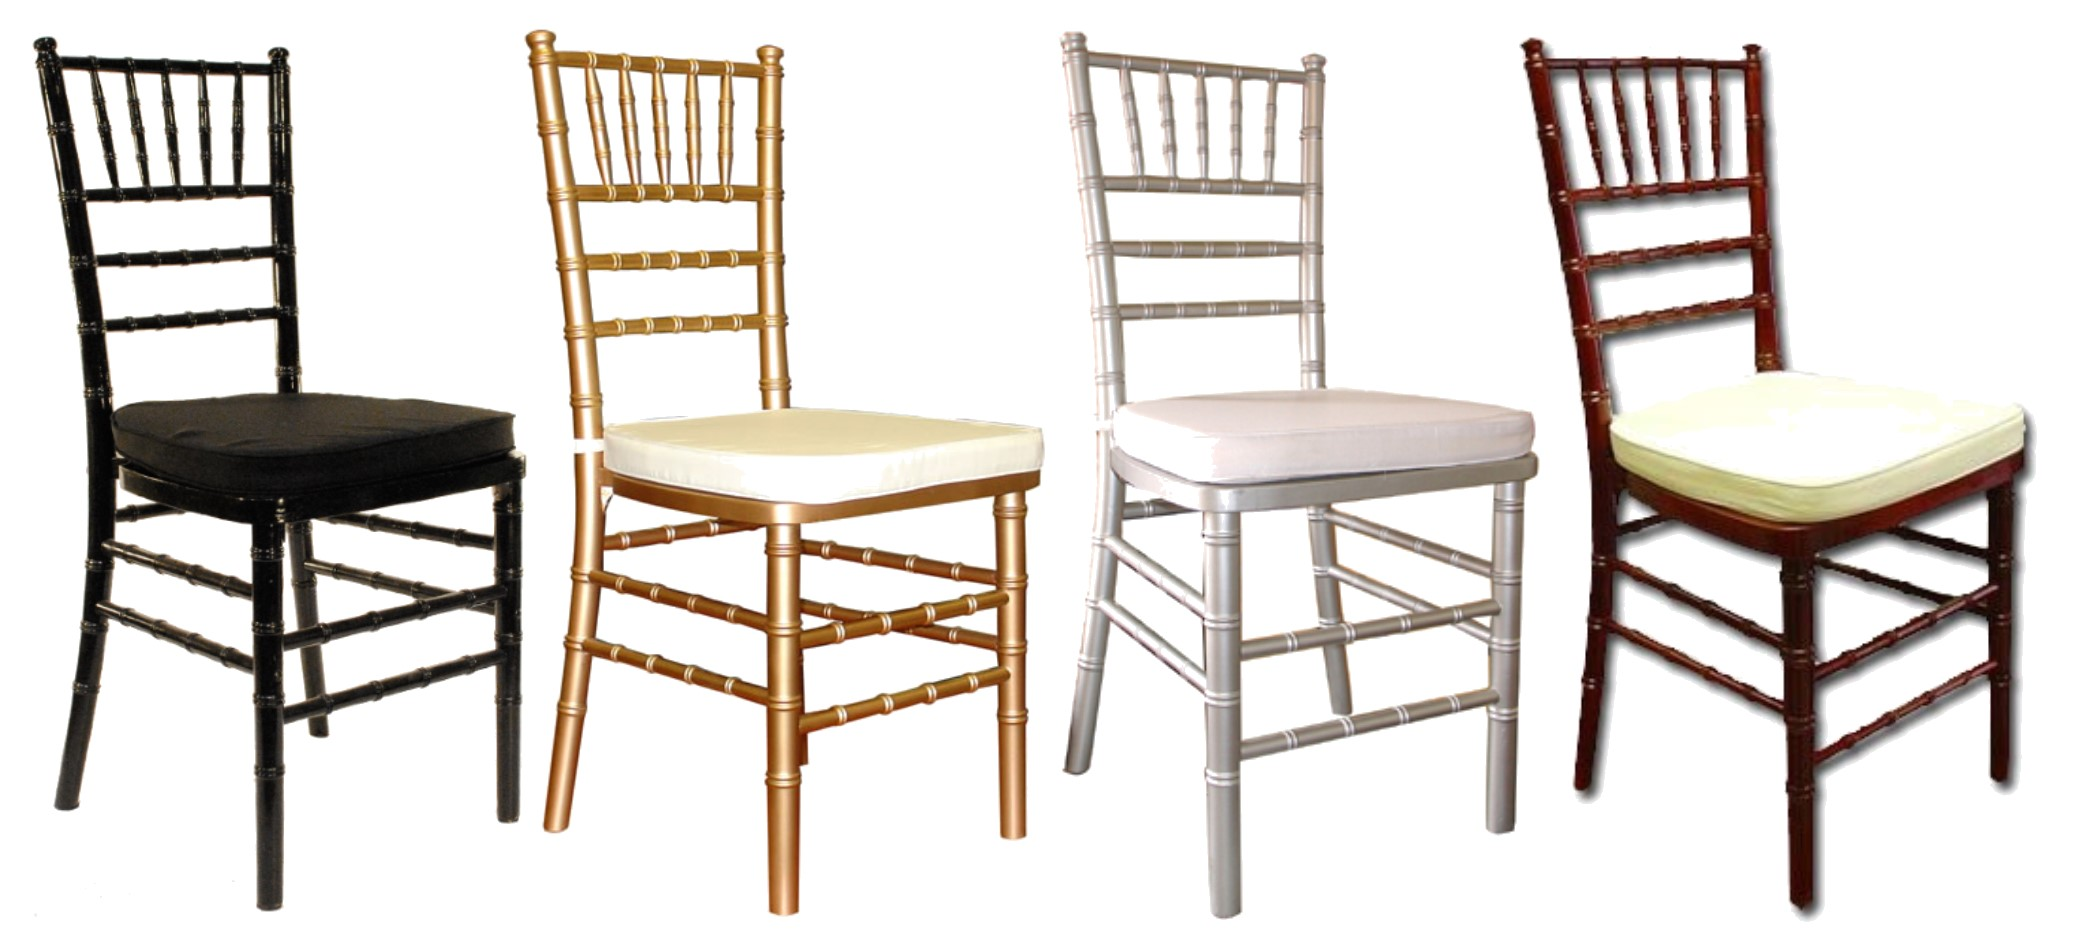 Blk GLD SLV WOOD Chiavari Chairs.jpg